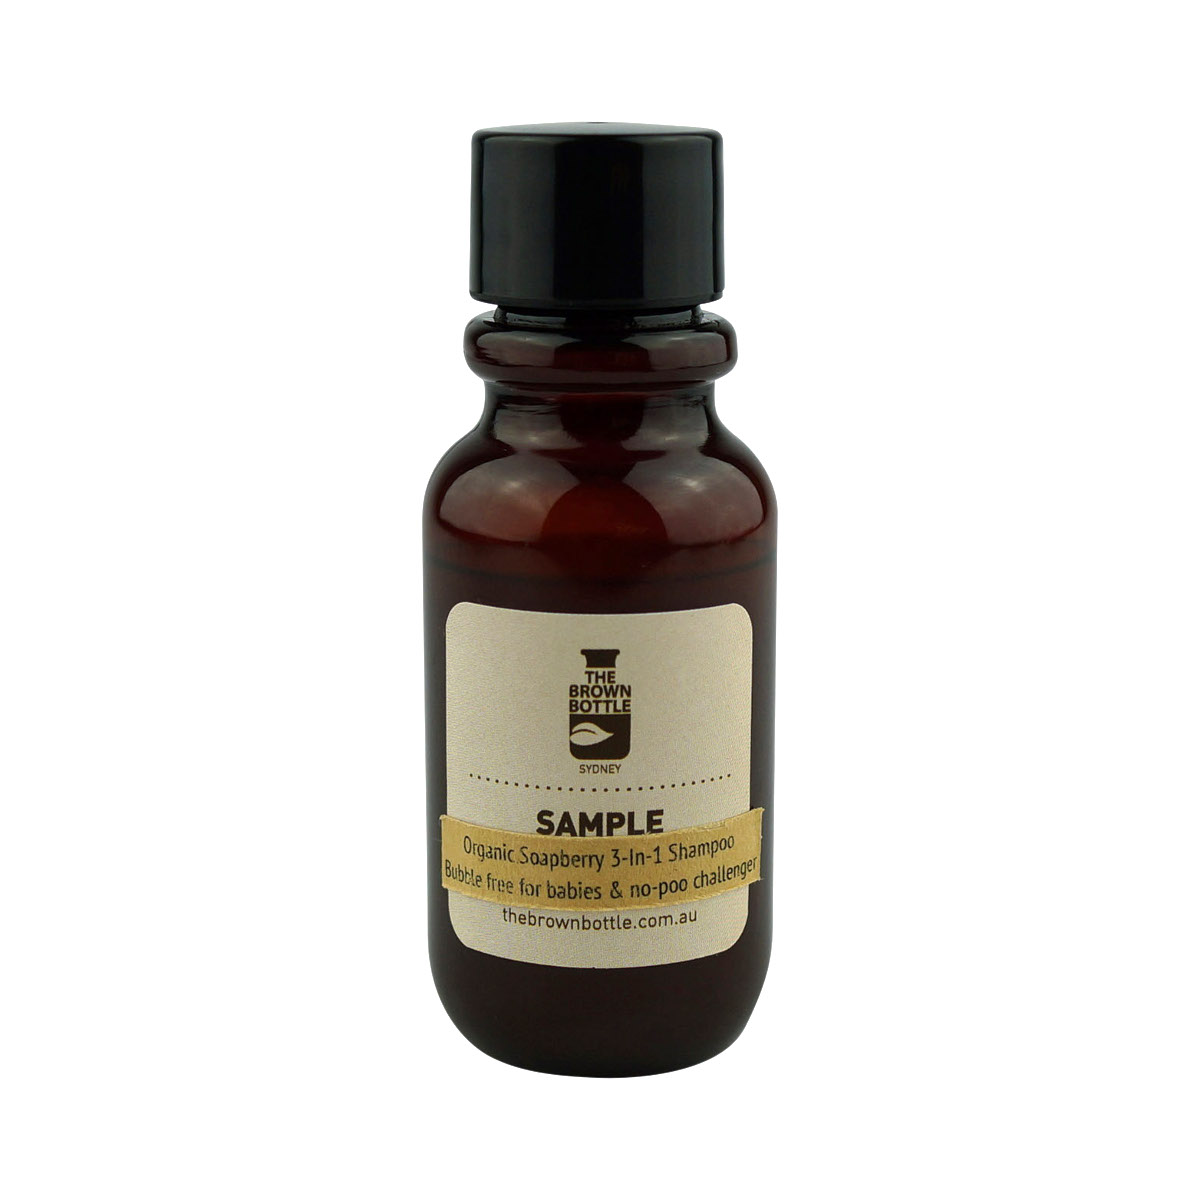 Receive a FREE Sample of Organic Soapberry 3-In-1 Shampoo